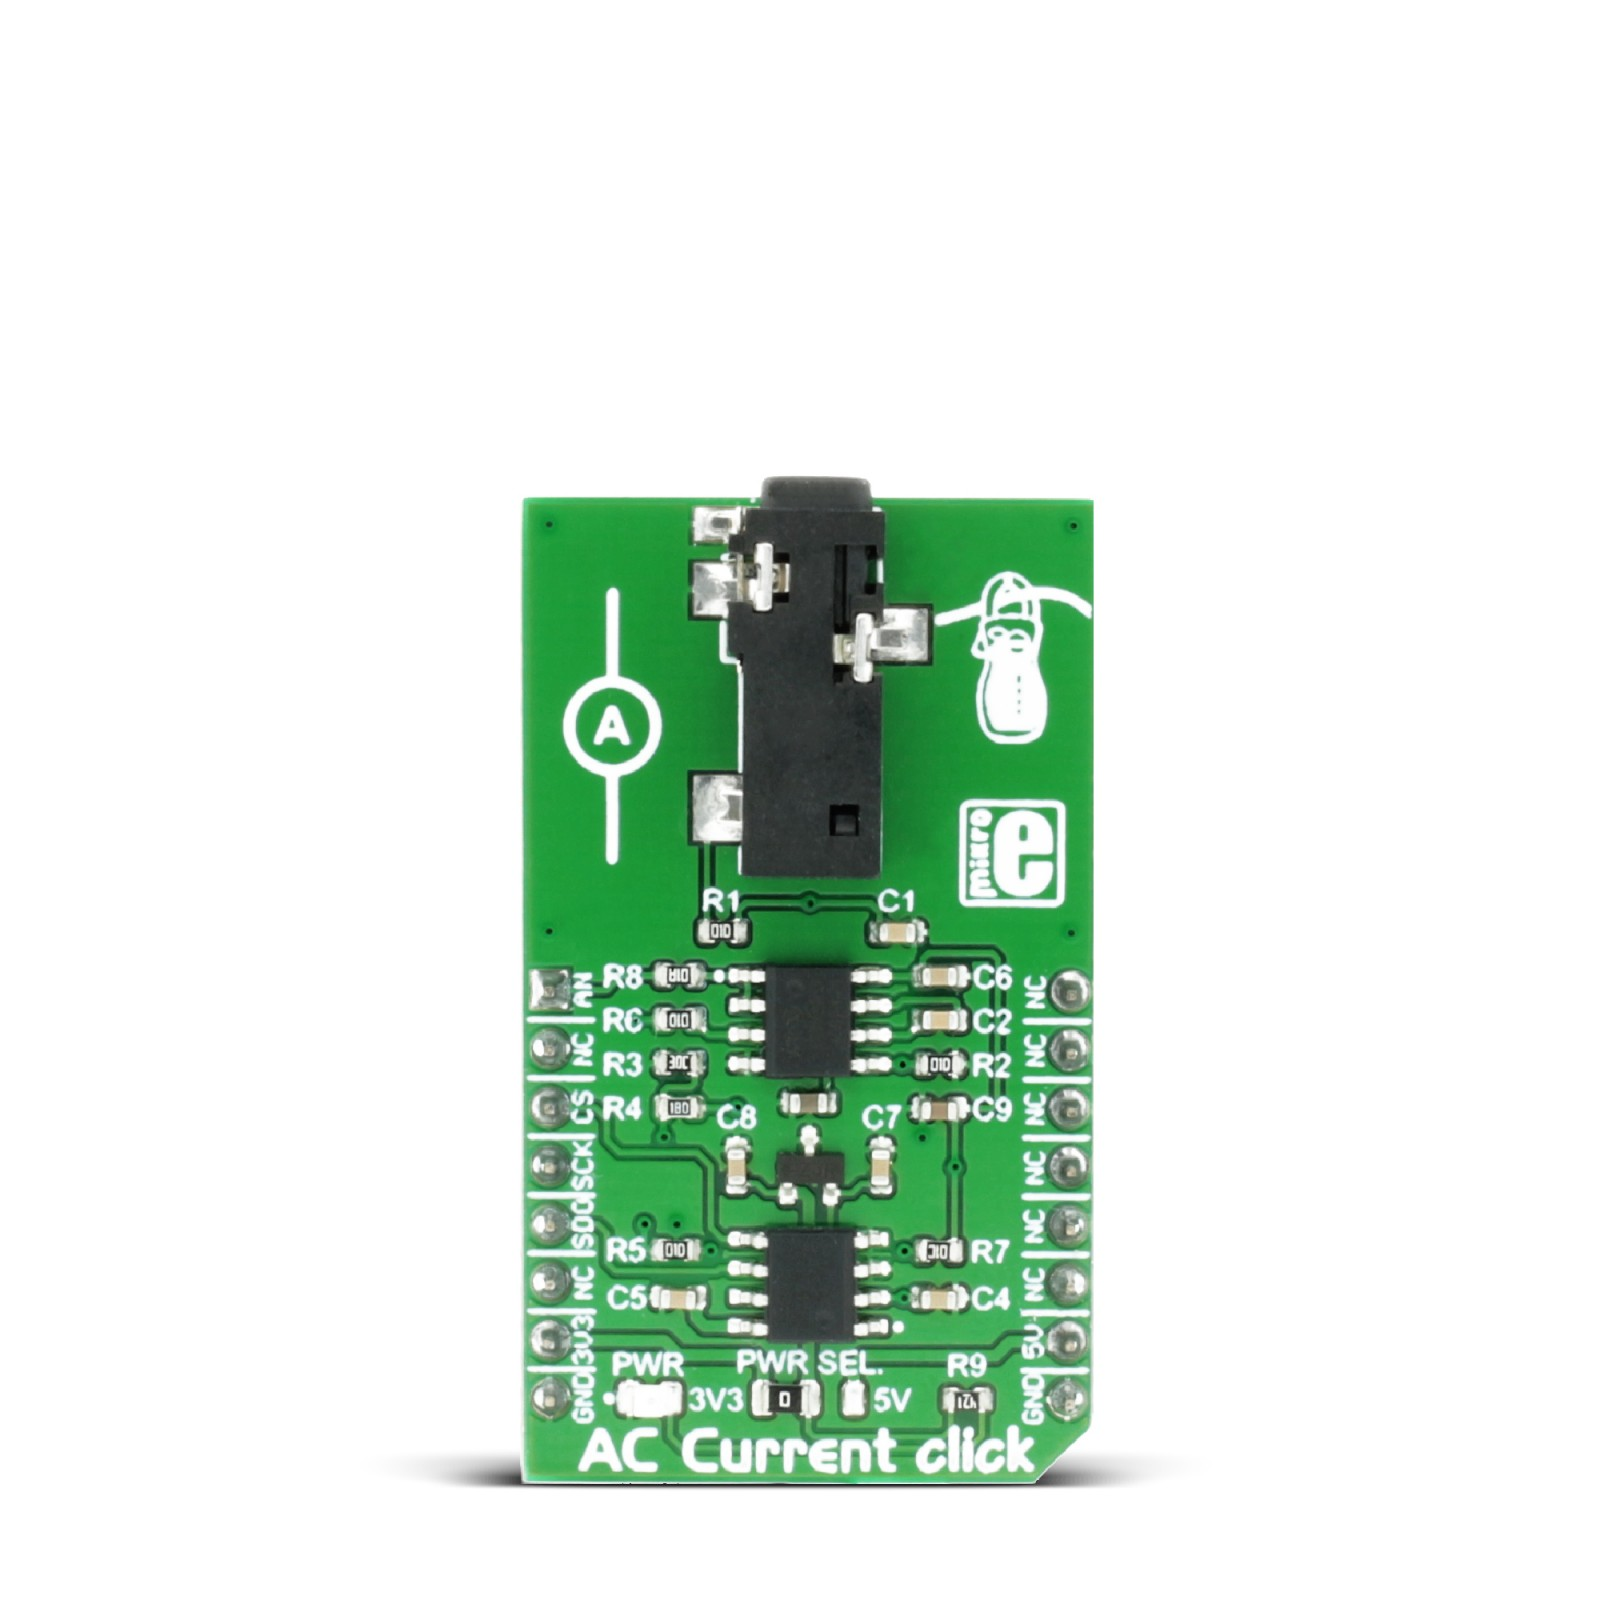 Ac Current Click Board With Mcp3201 Adc Converter From Microchip Supply Bias Level At The Circuit Looks Like Your Basic Inverting Mgctlbxnmzp Mgctlbxv5112 Mgctlbxlc Mgctlbxpprestashop